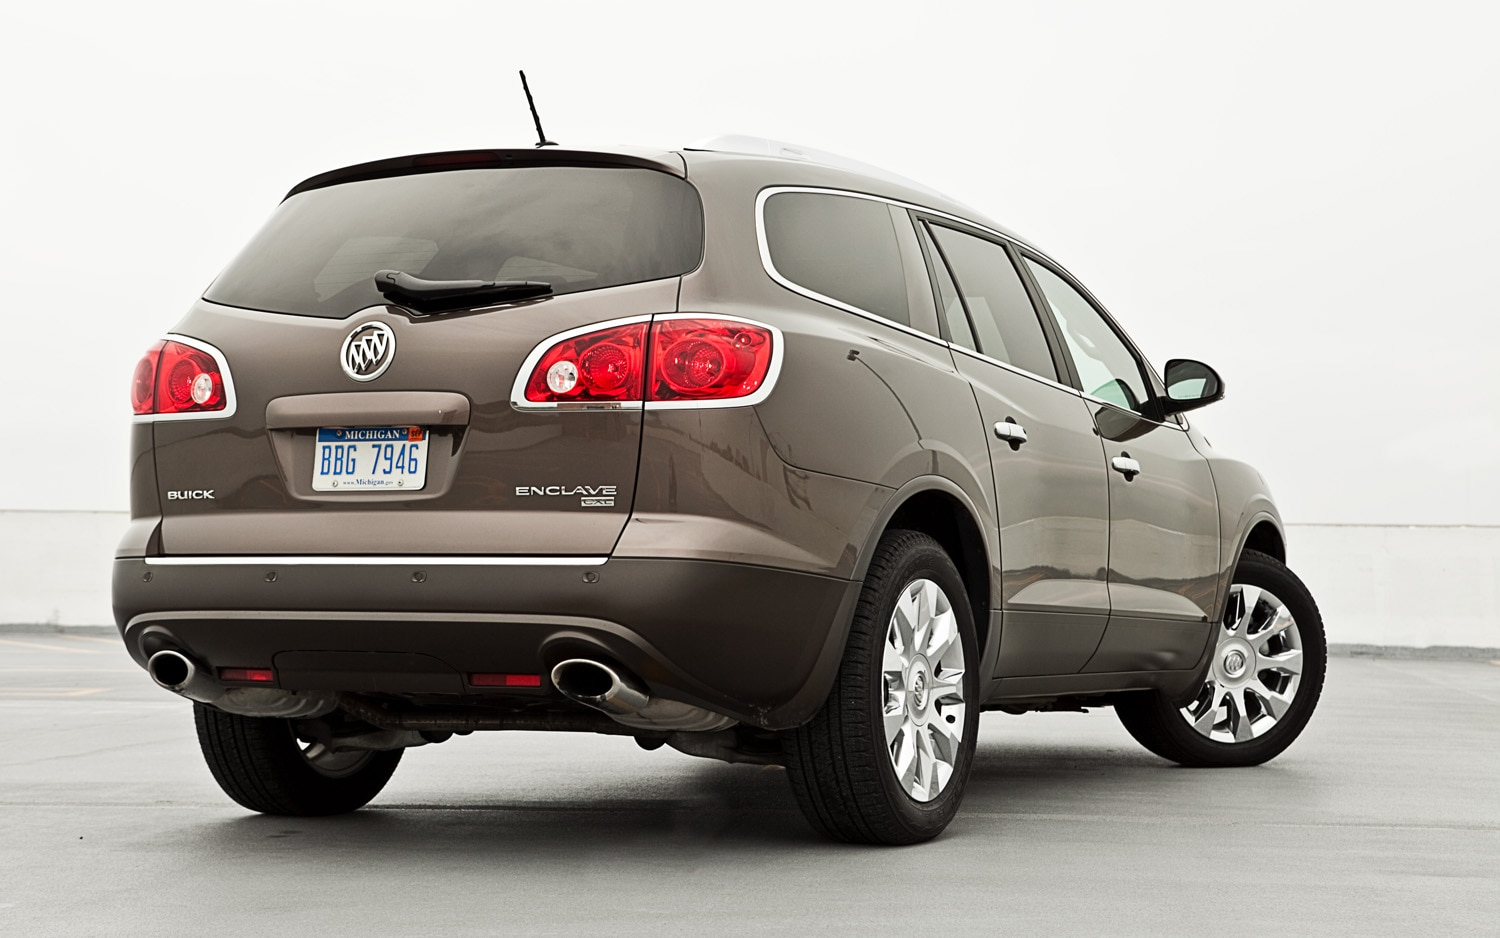 2011 Buick Enclave CXL-2 AWD - Editors' Notebook ...